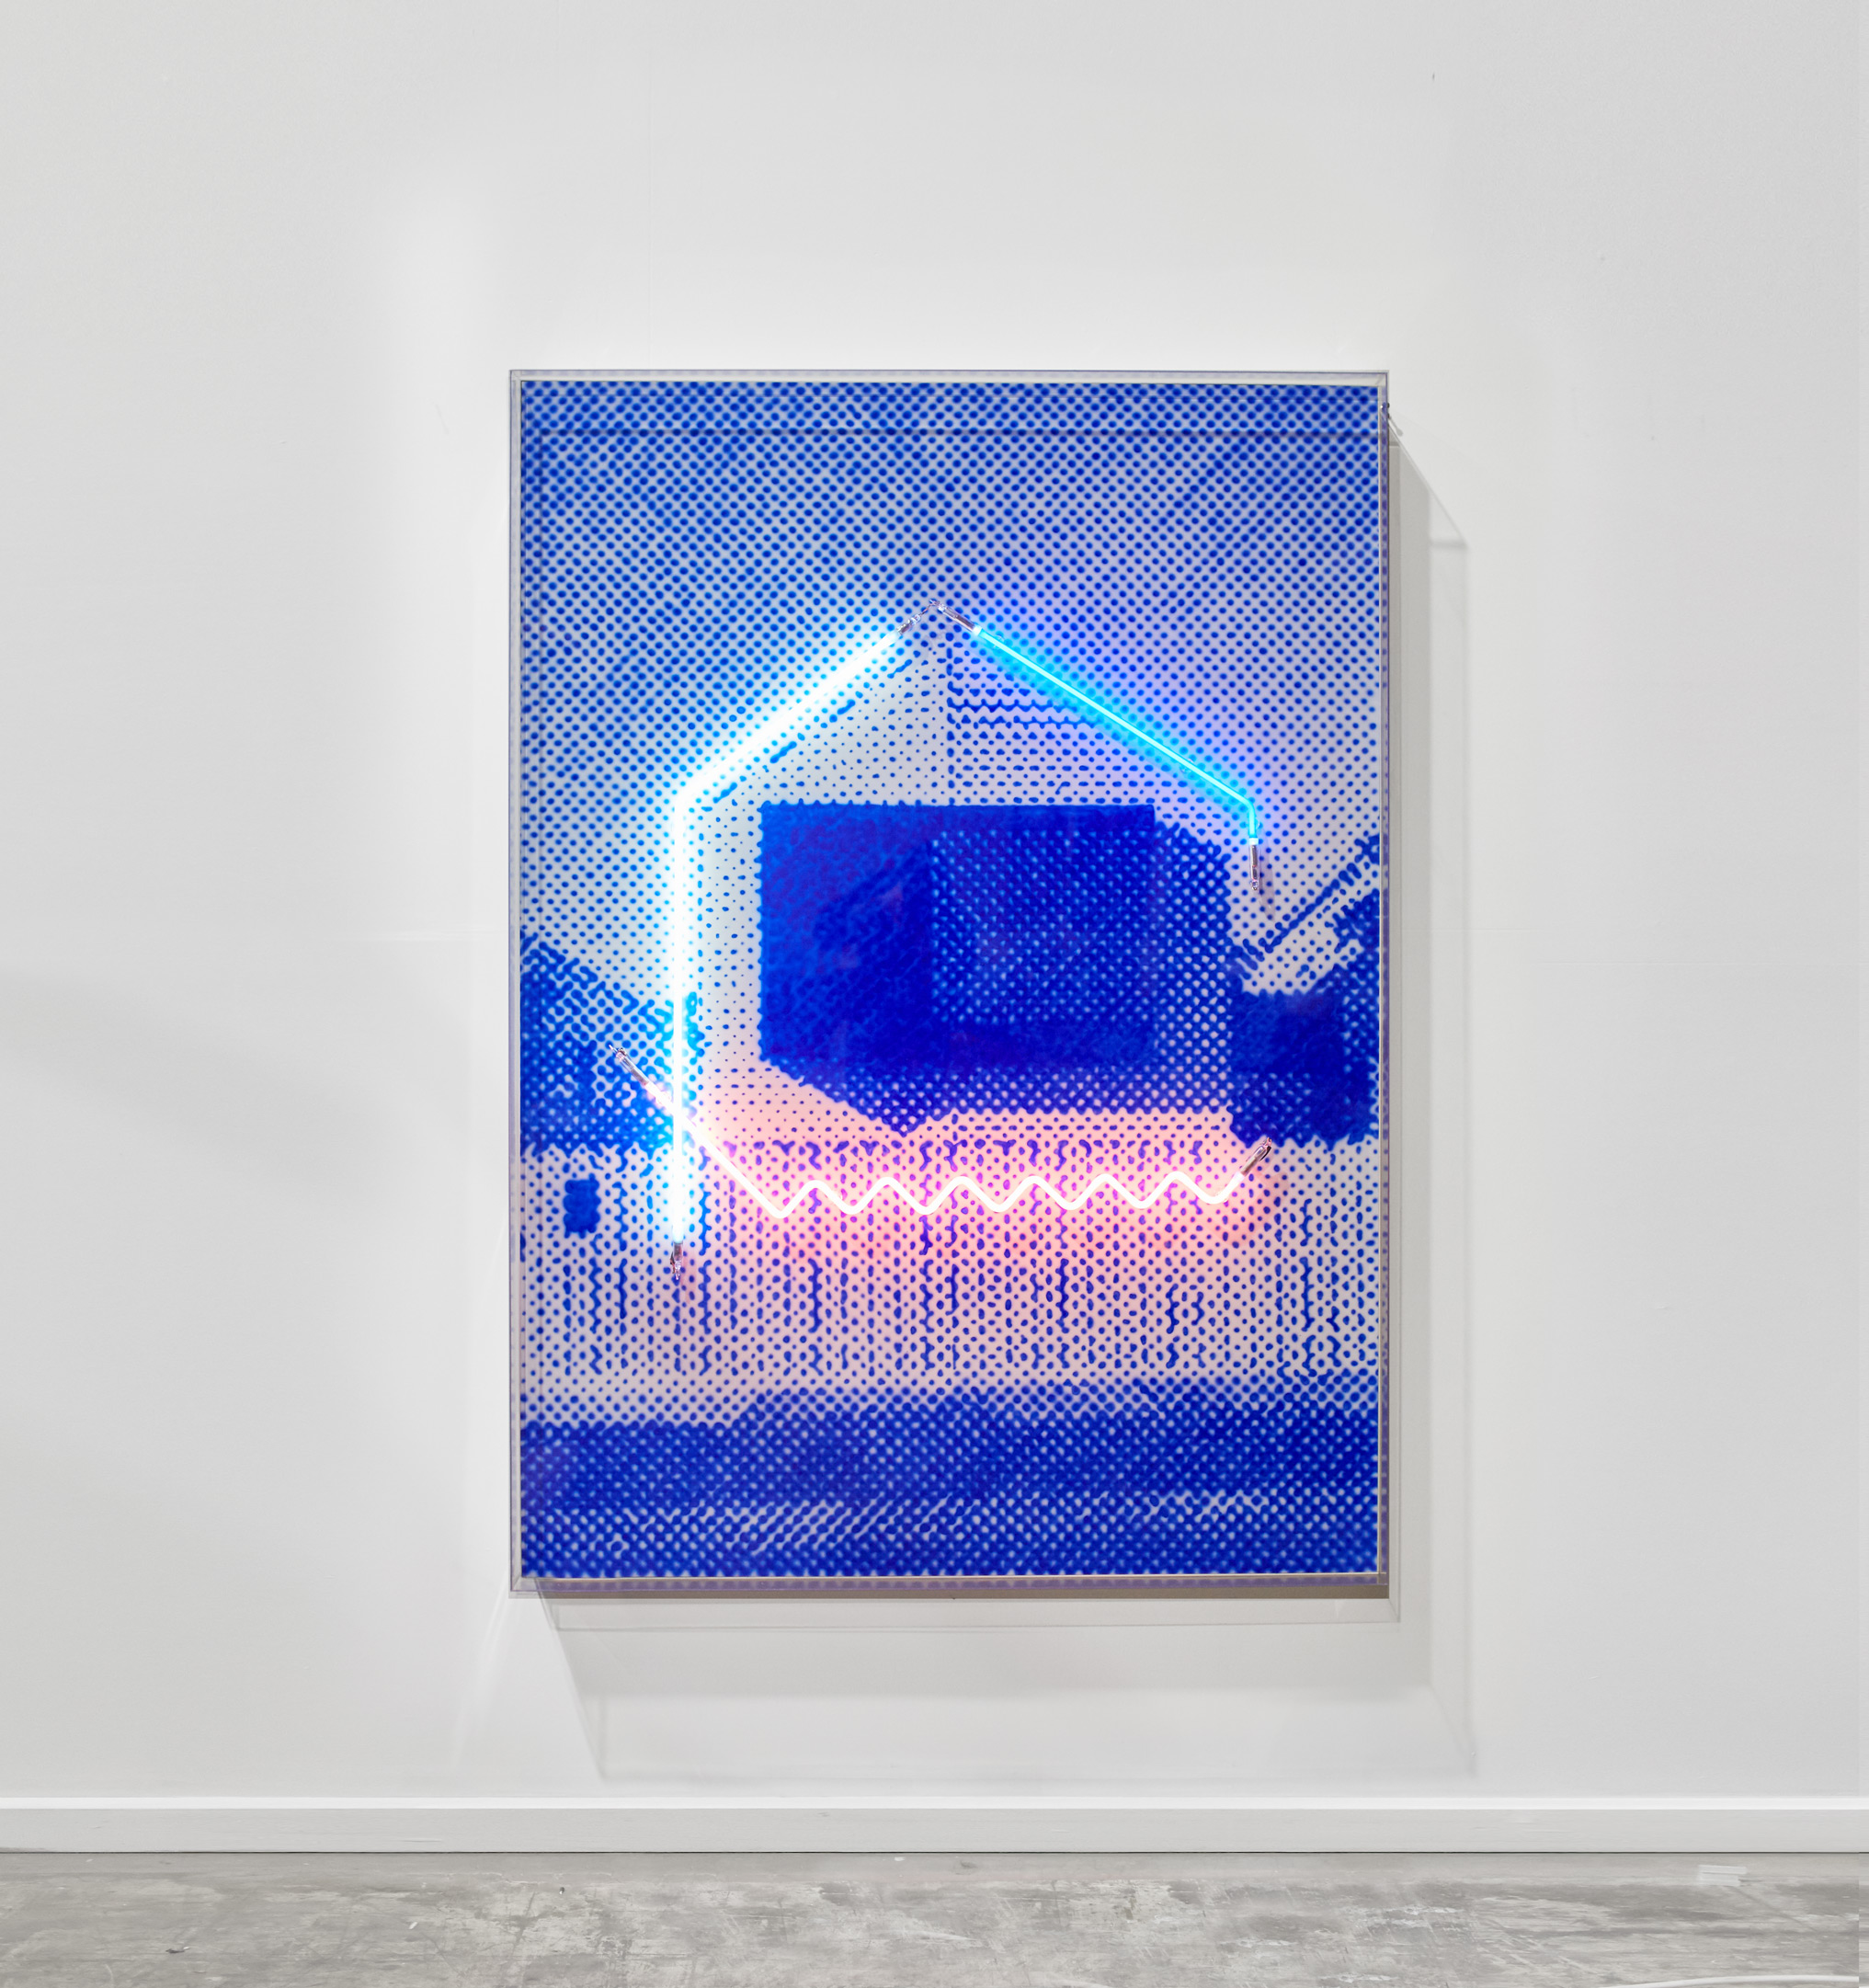 Picture perfect with a white picket fence  Airbrush acrylic polymer and neon on dibond, acrylic frame 115x160cm